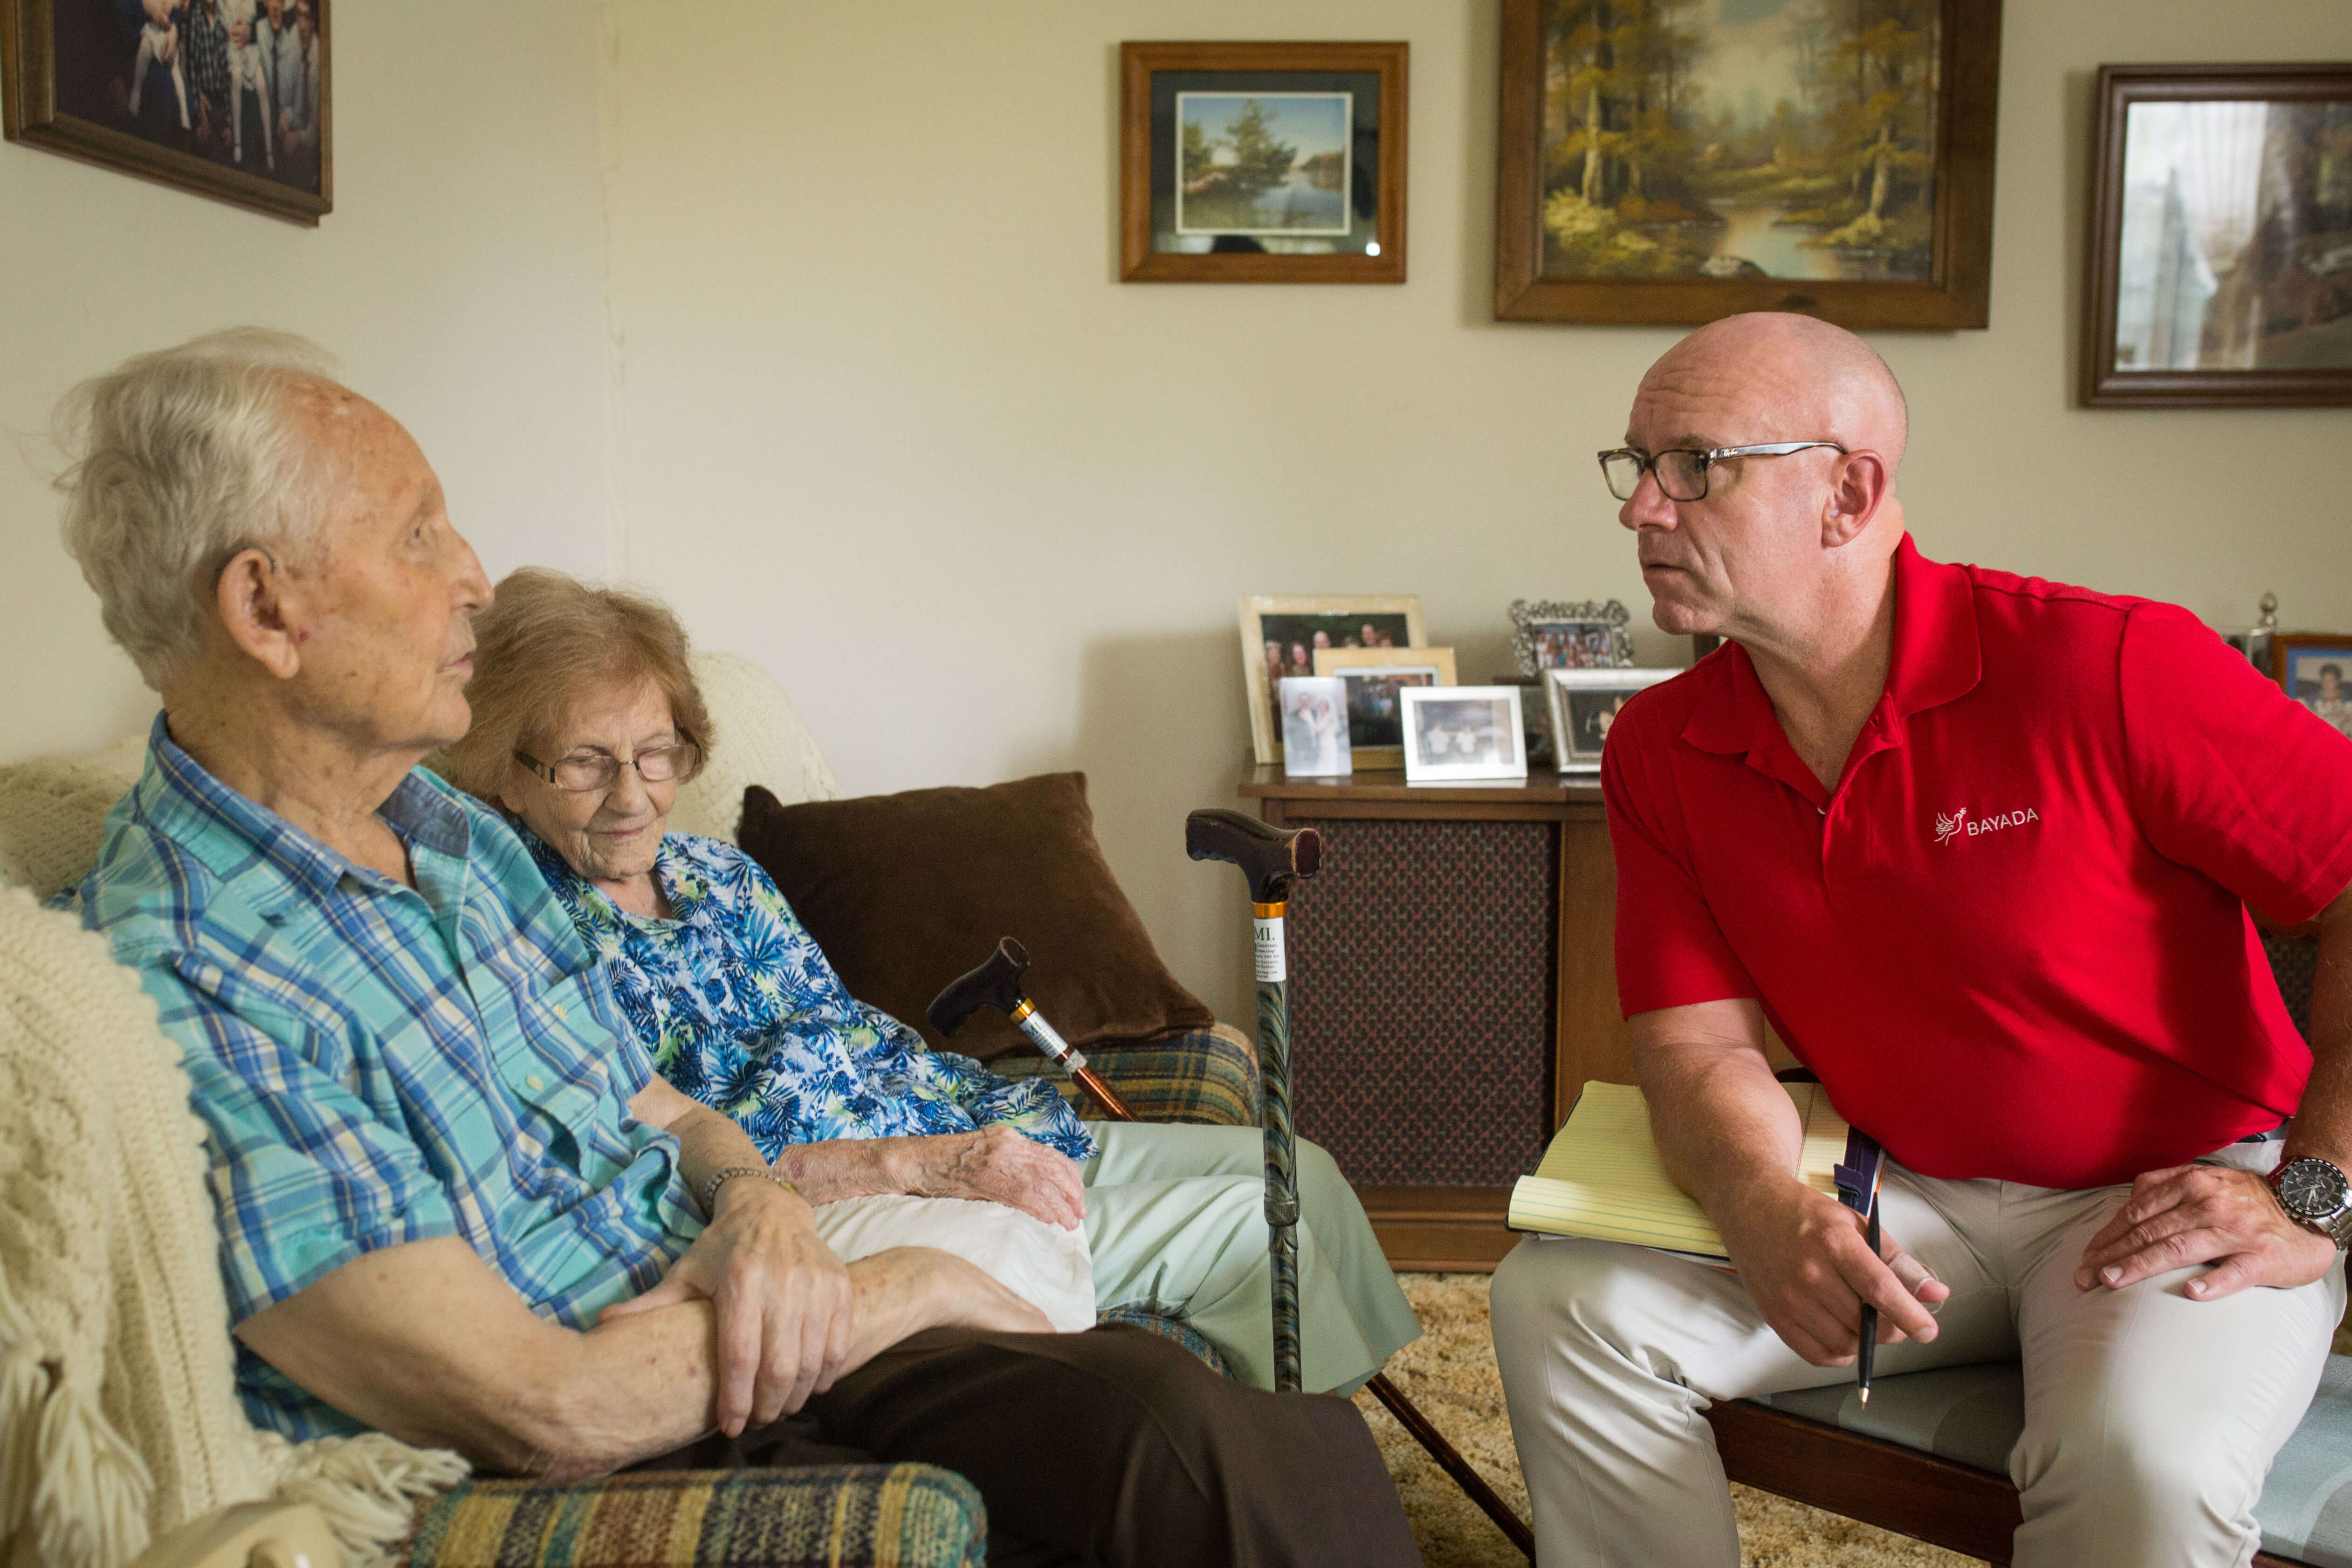 Stephen, a hospice social worker, speaks to his hospice client in his living room.